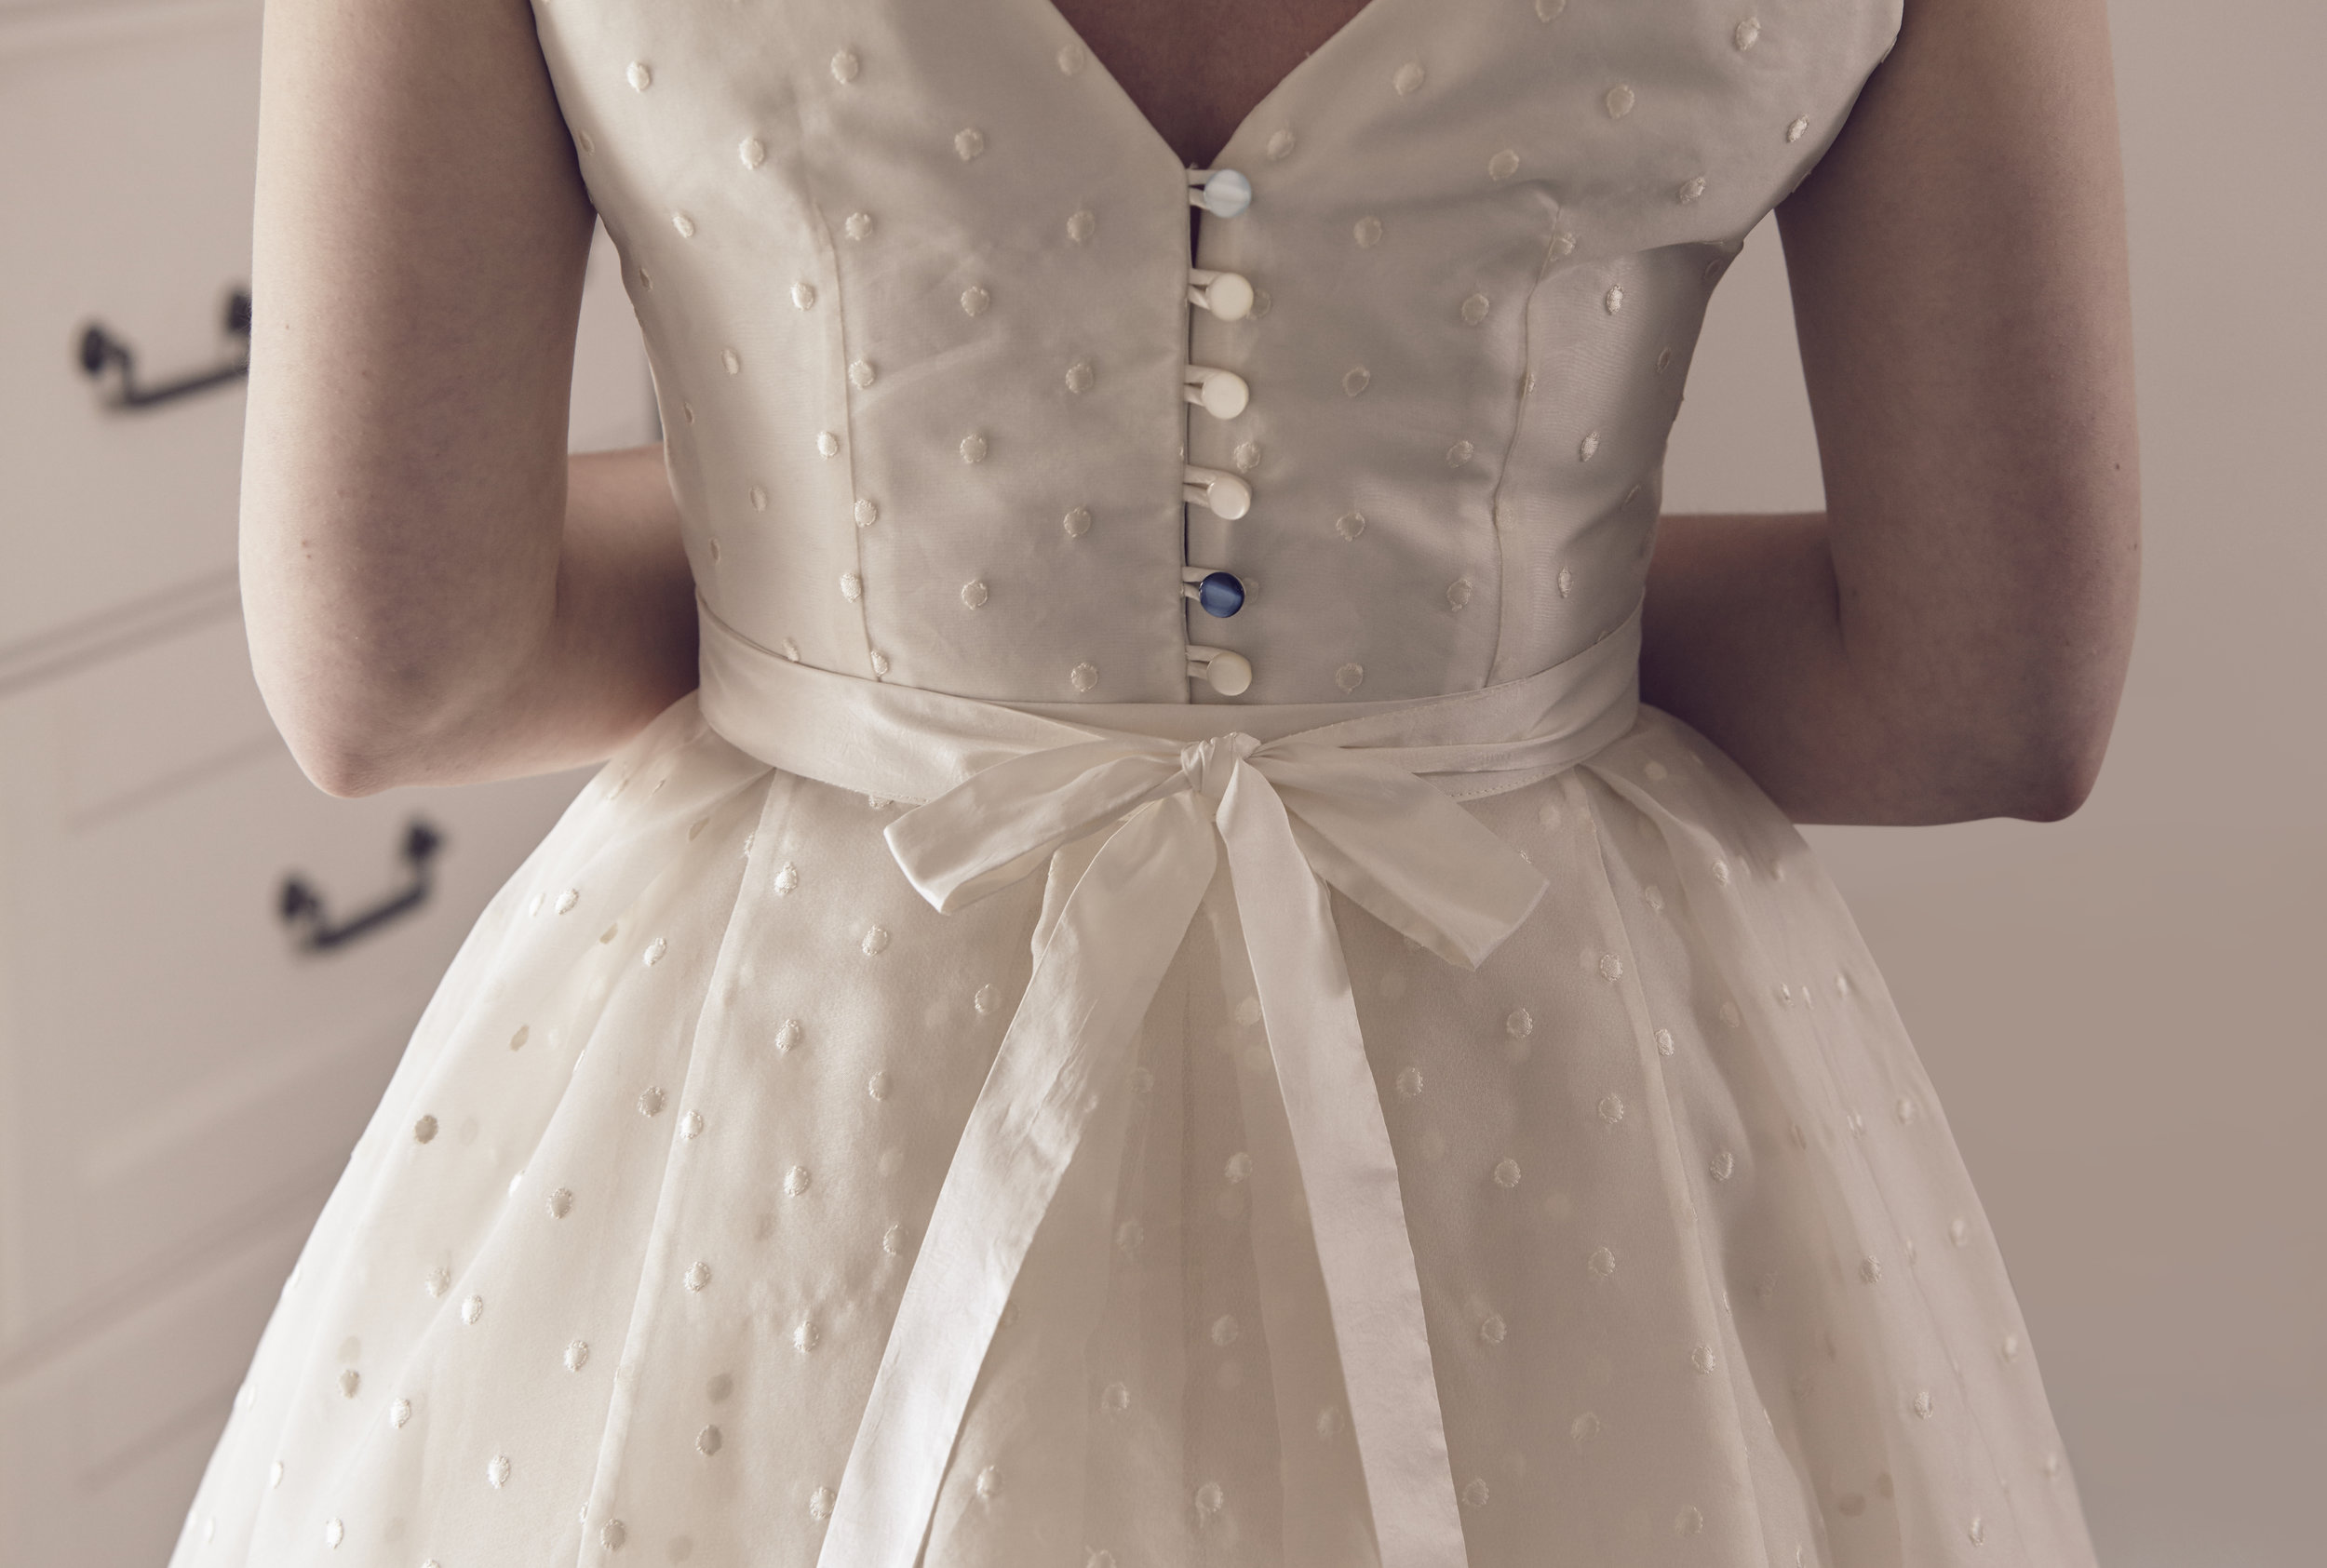 Suzi-Matlock-Polka-Dot-Bespoke-Wedding-Dress-High-Low-Susanna-Greening-Designs-Derbyshire-5